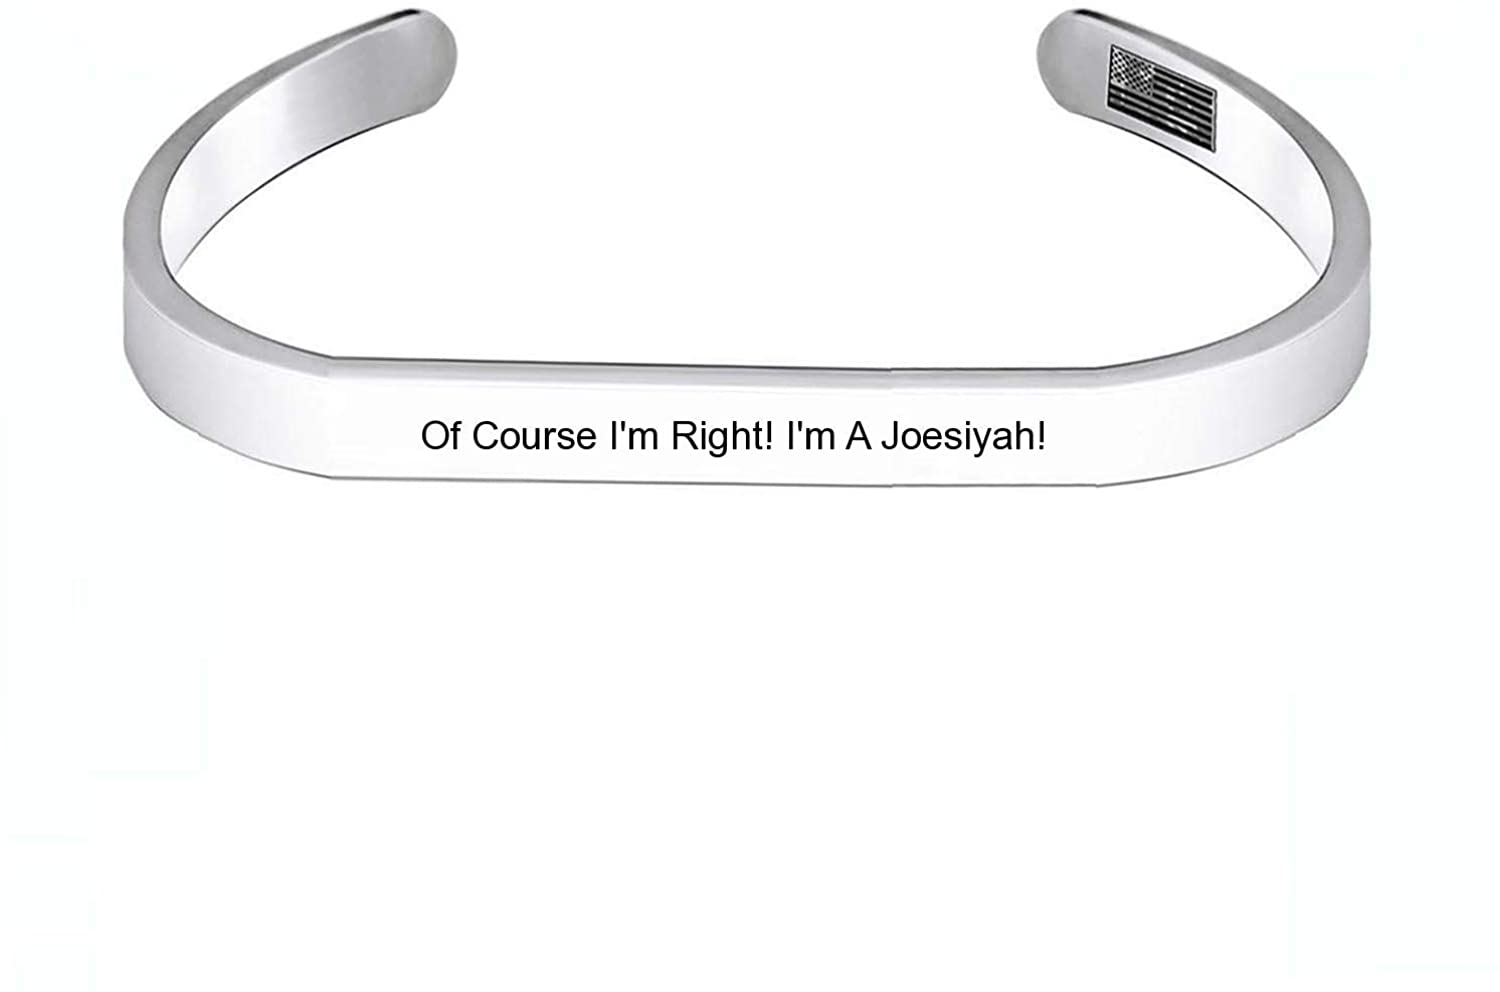 Enhome Cuff Bracelets of Course I'm Right! I'm A Joesiyah! for Women Birthday Gifts for Her Silver Cuff Bangle American Flag Bracelet